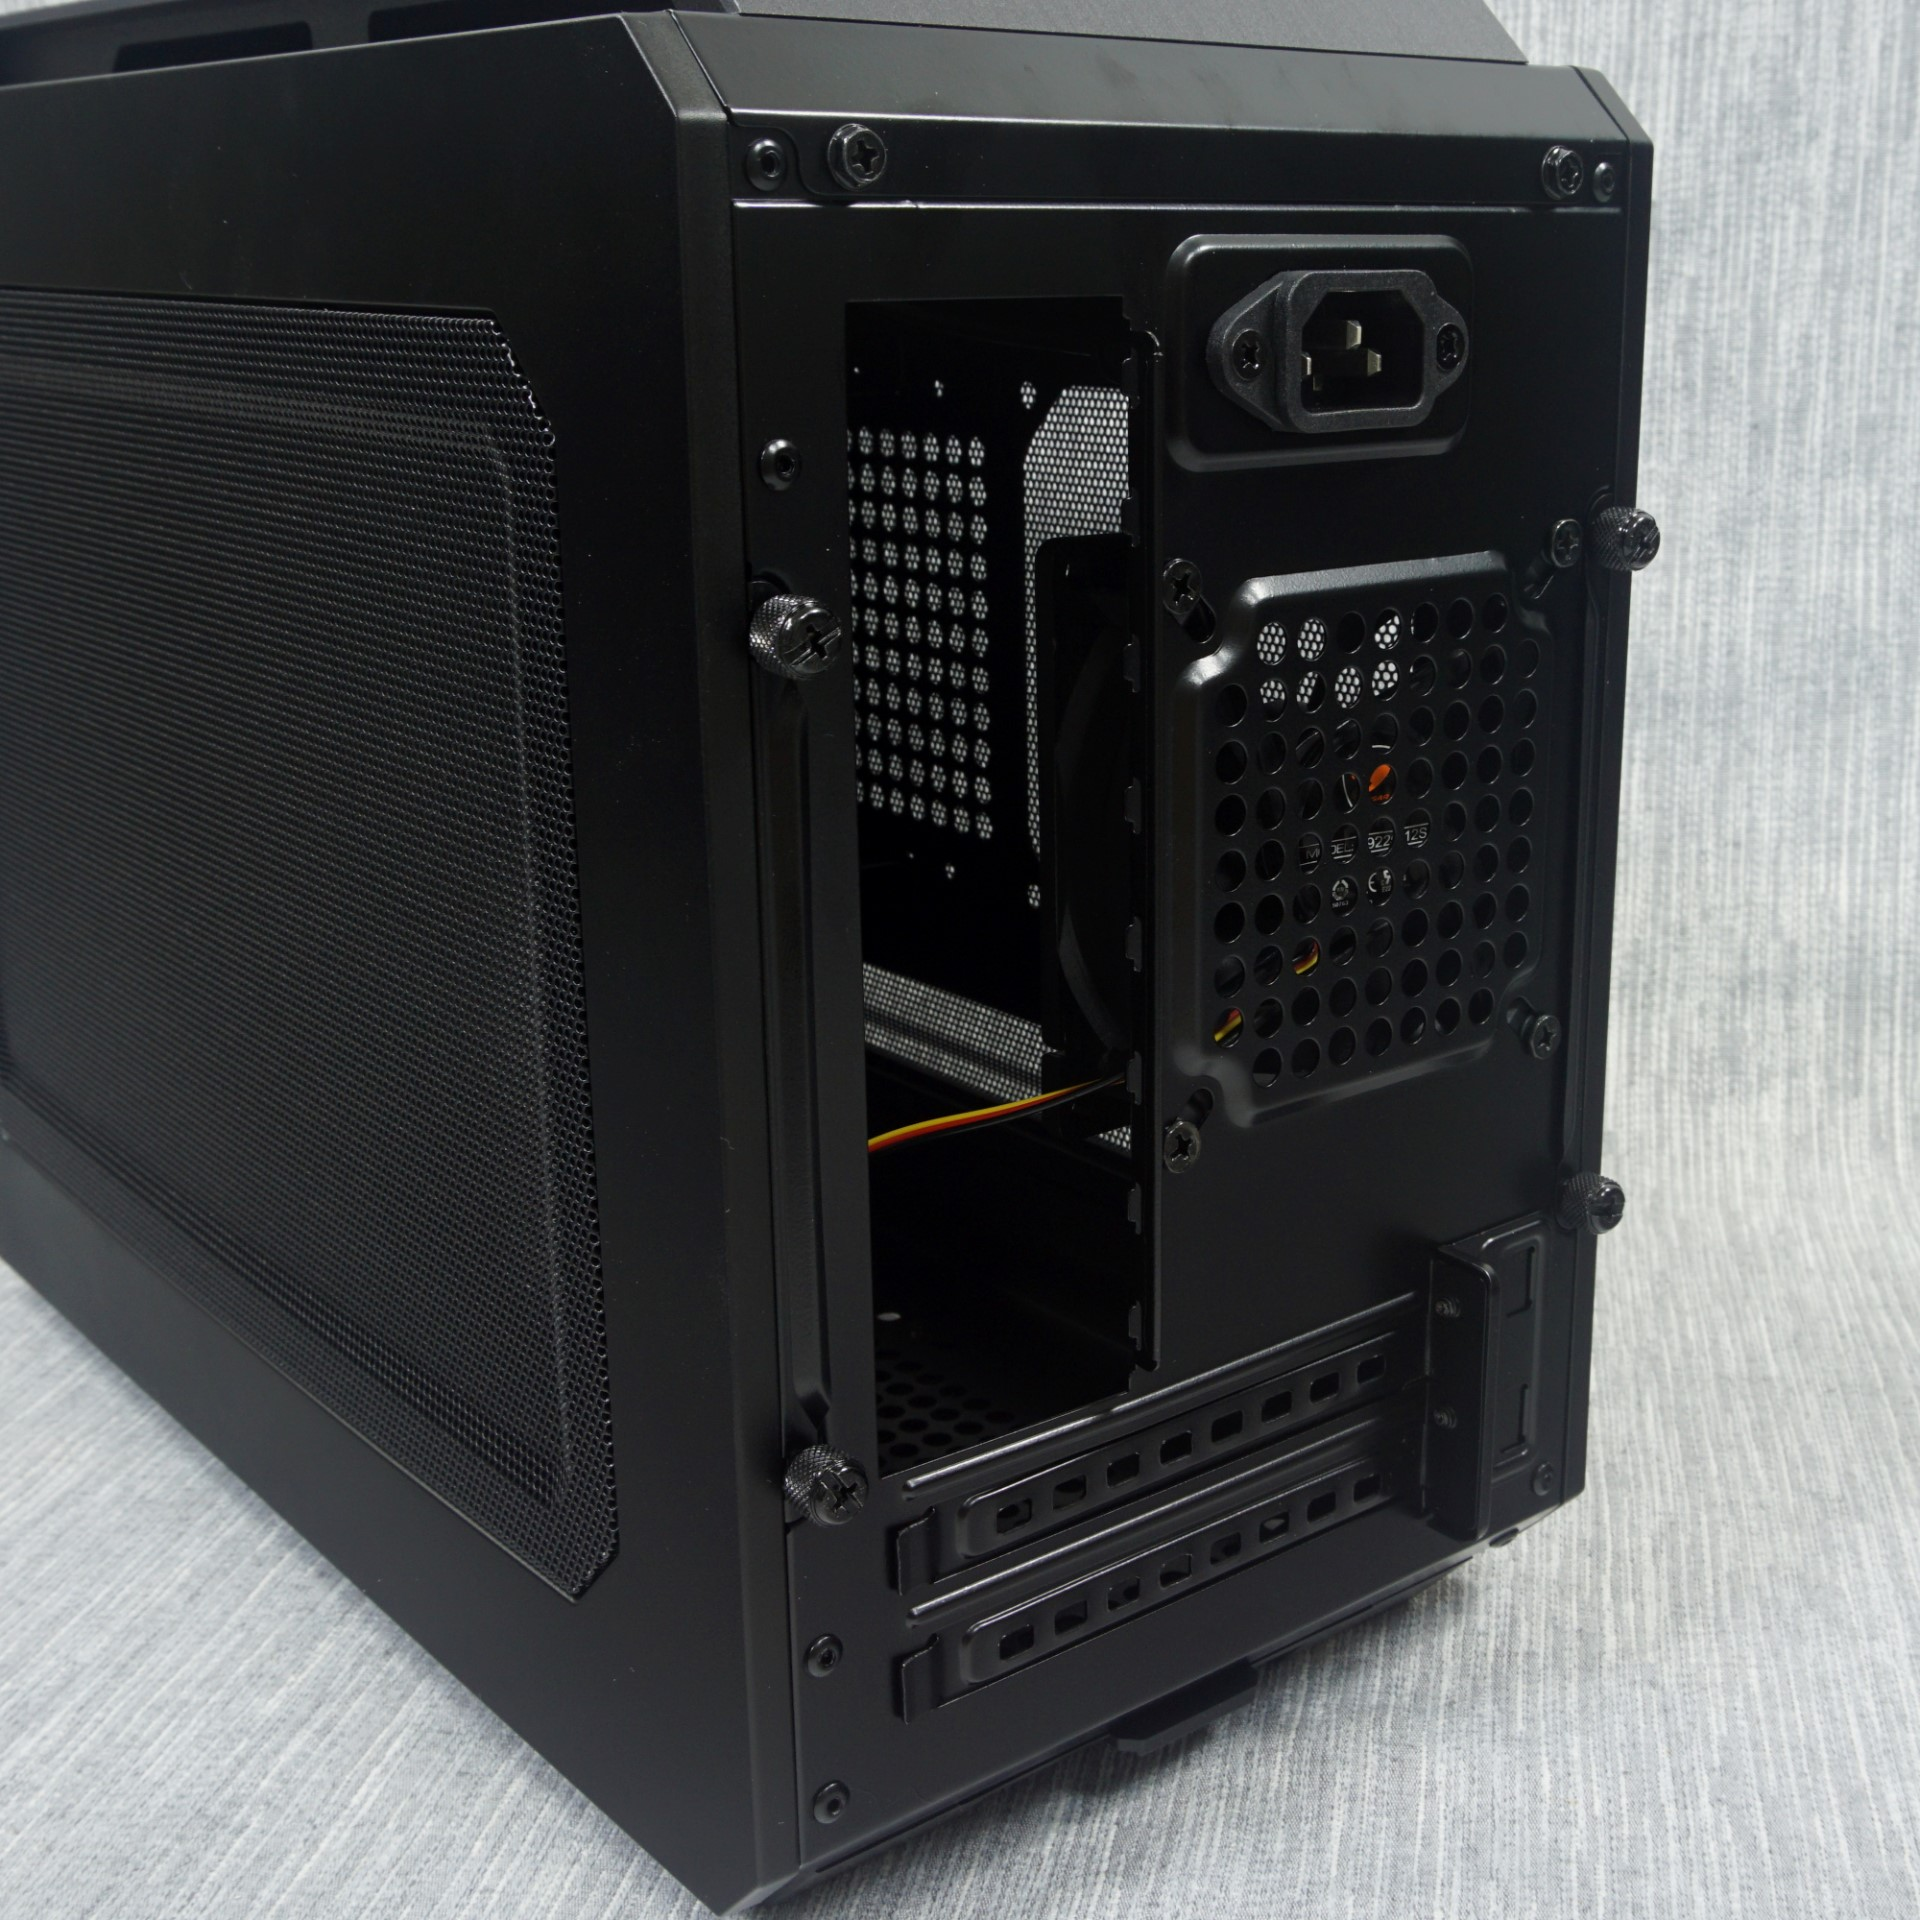 cougar qbx mini itx review